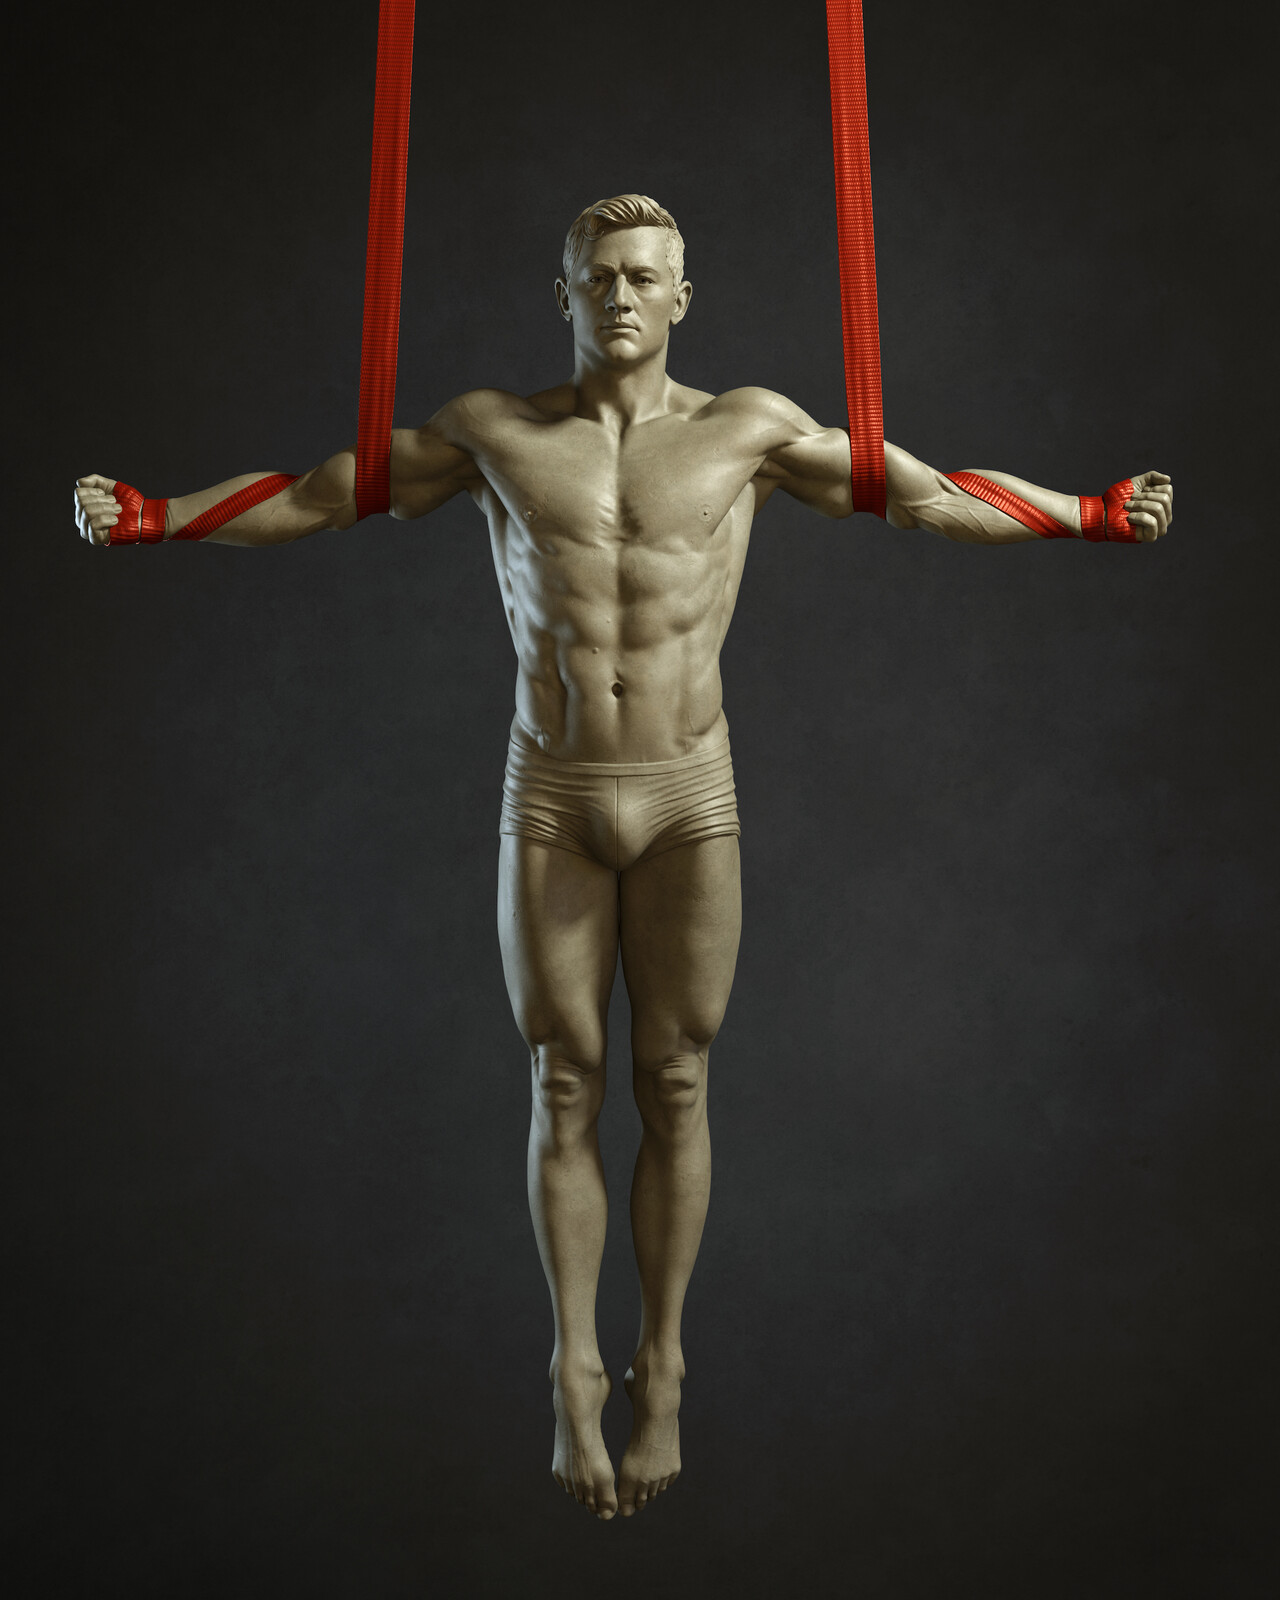 Male Straps 5 - Bodies in Motion (Anatomy Study)